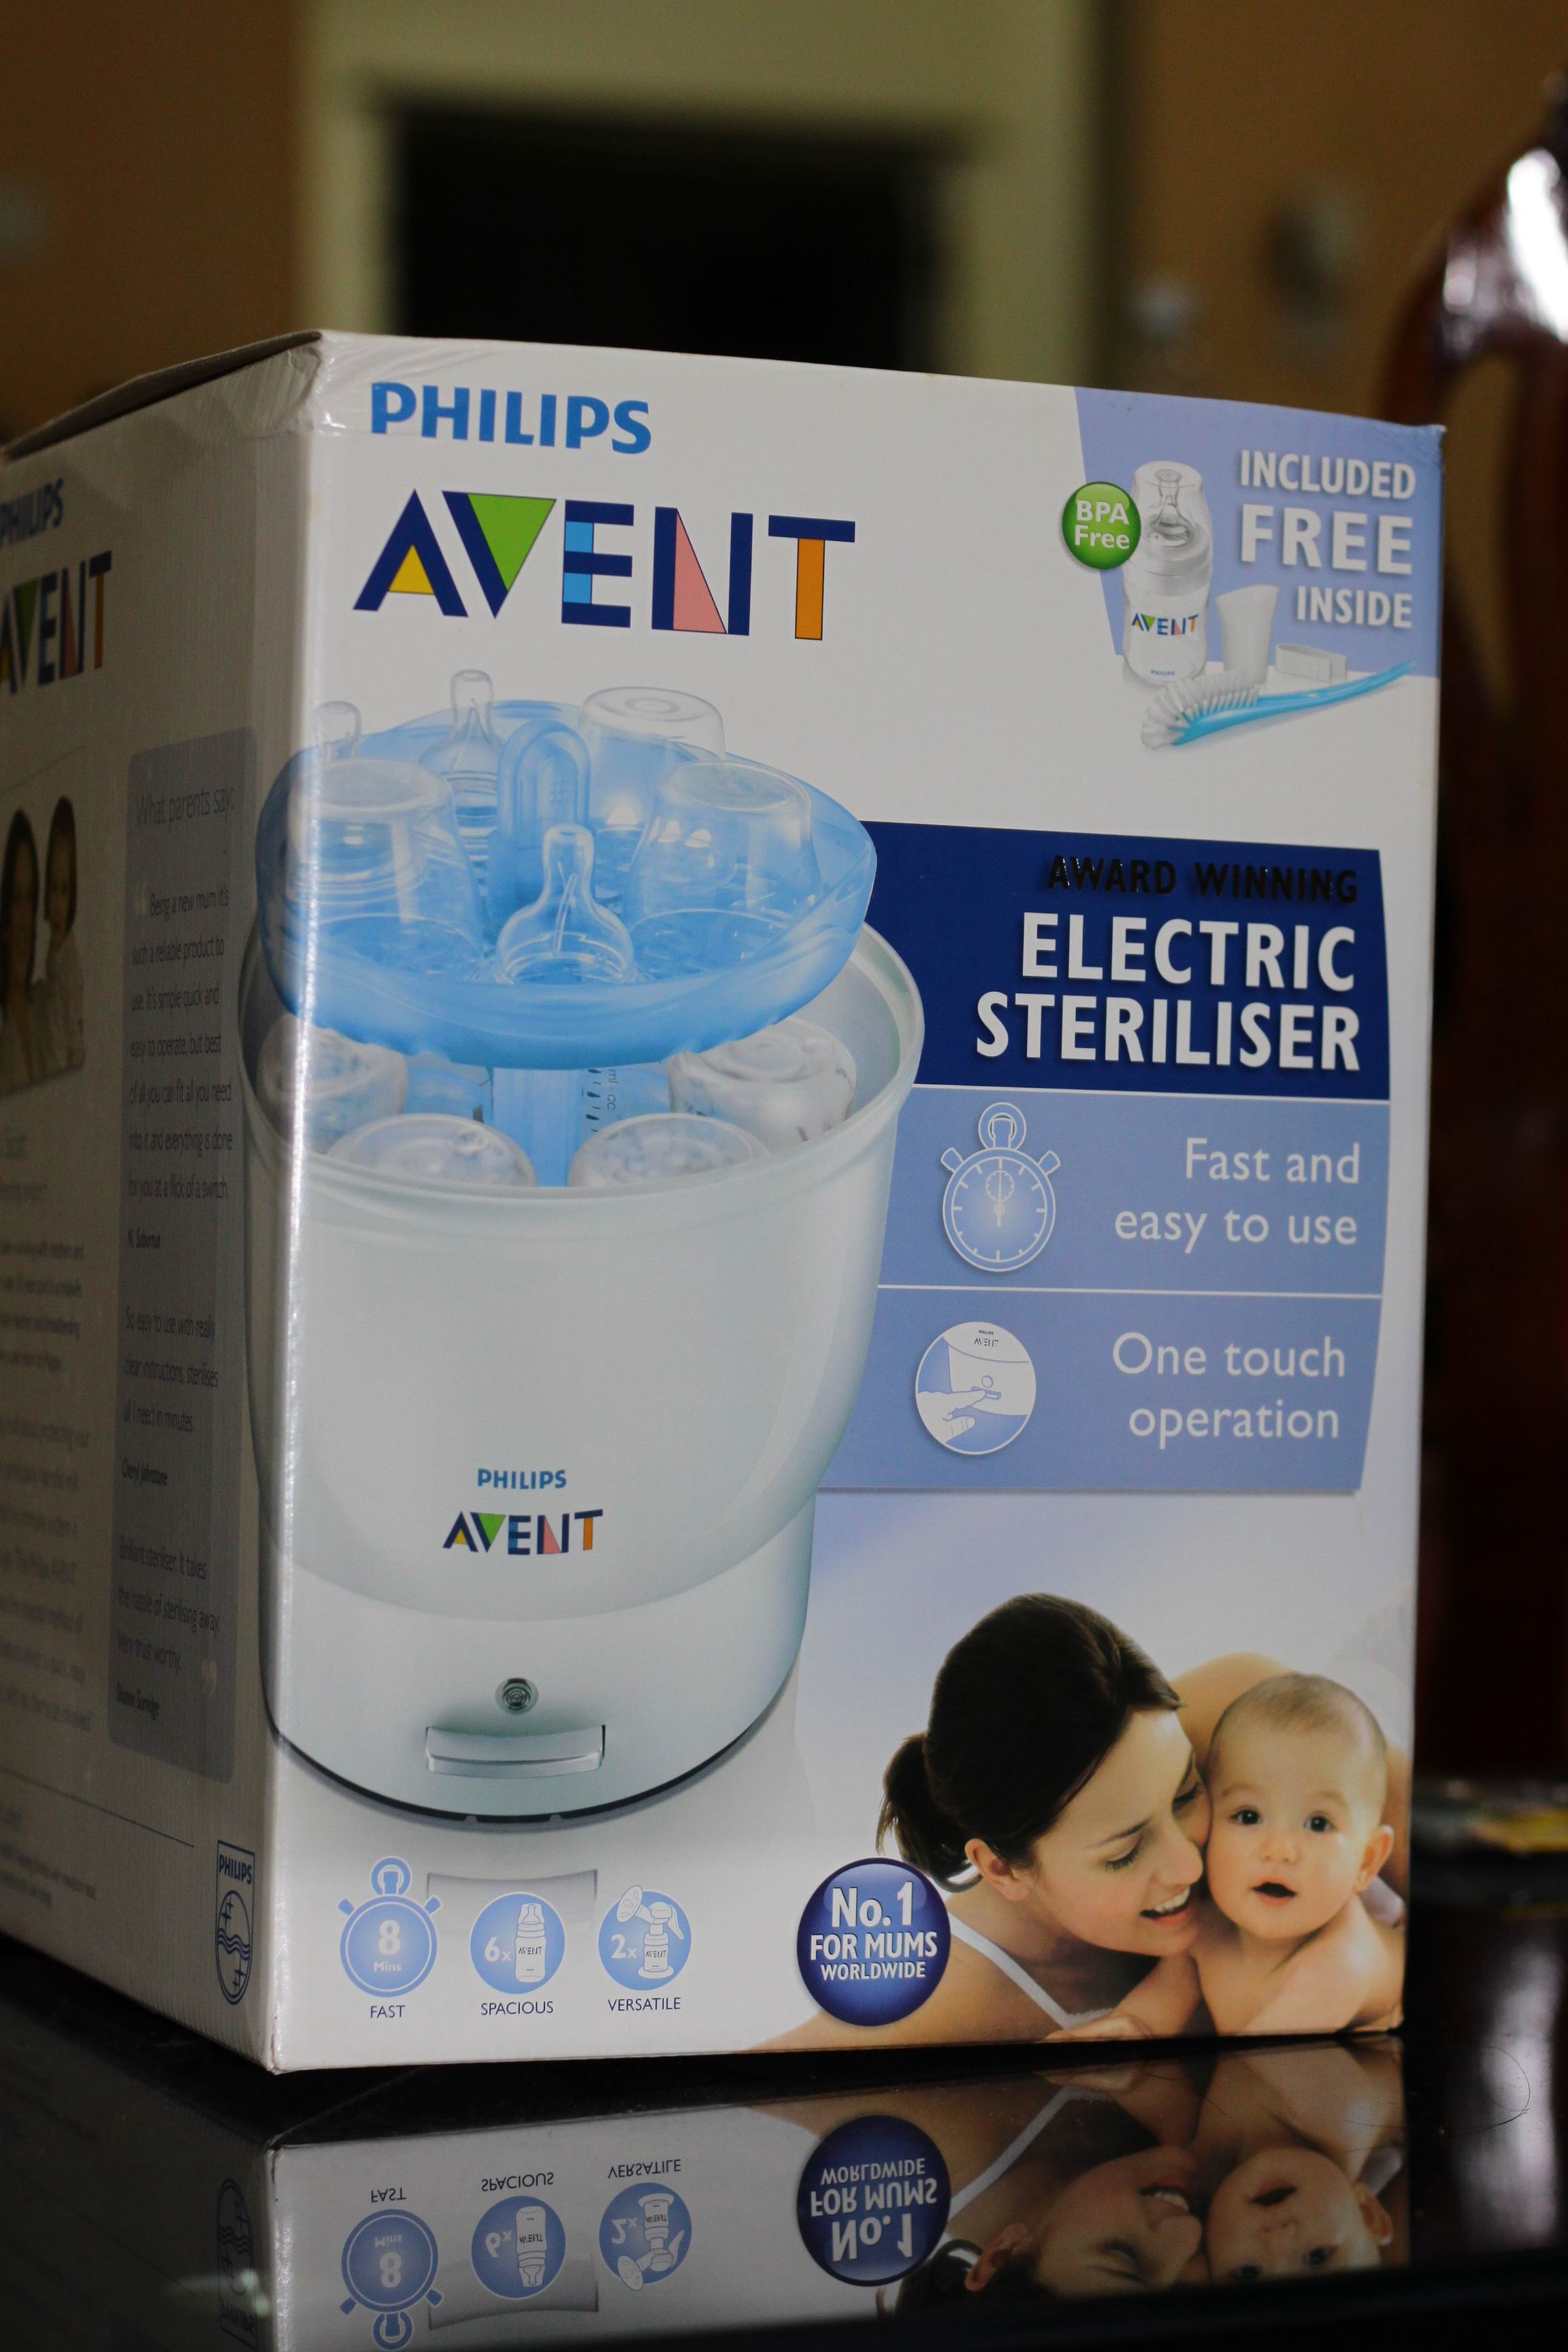 avent electric sterilizer iq24 manual